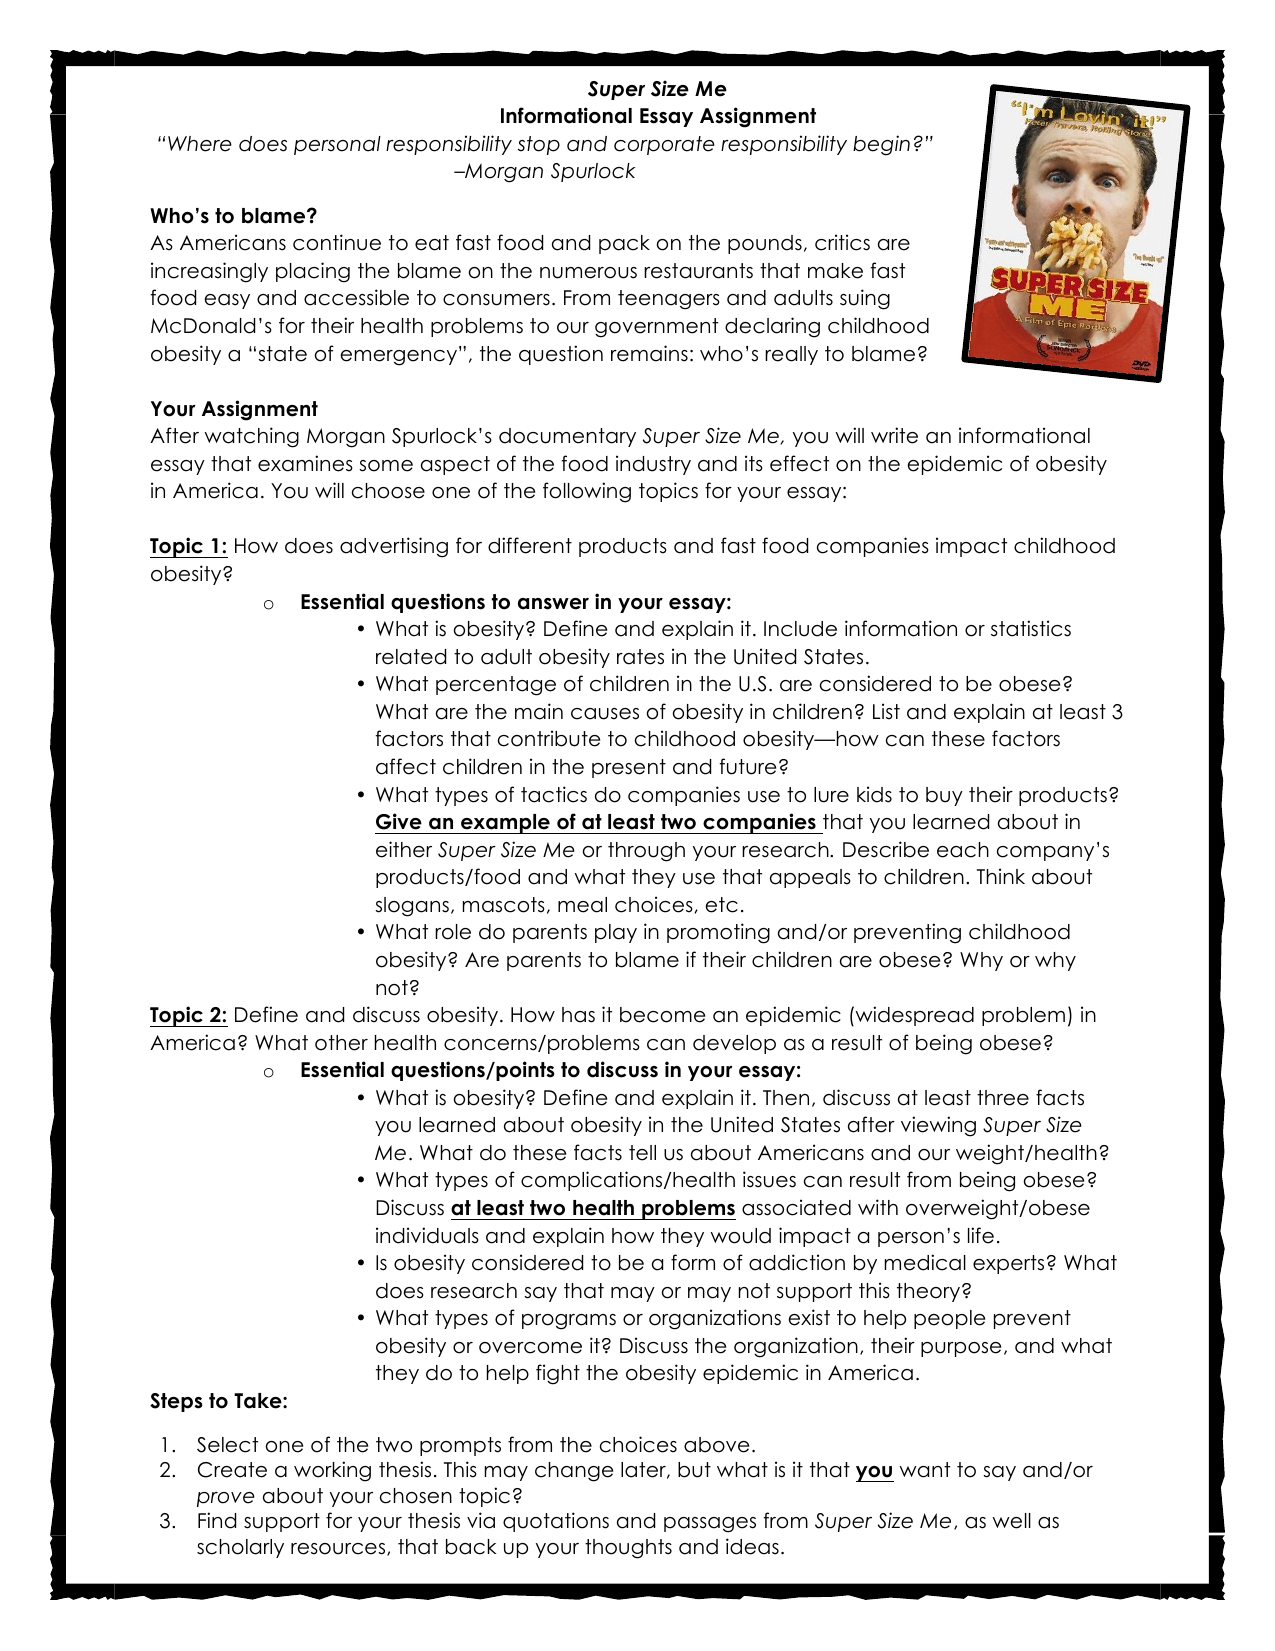 super size me informational essay assignment